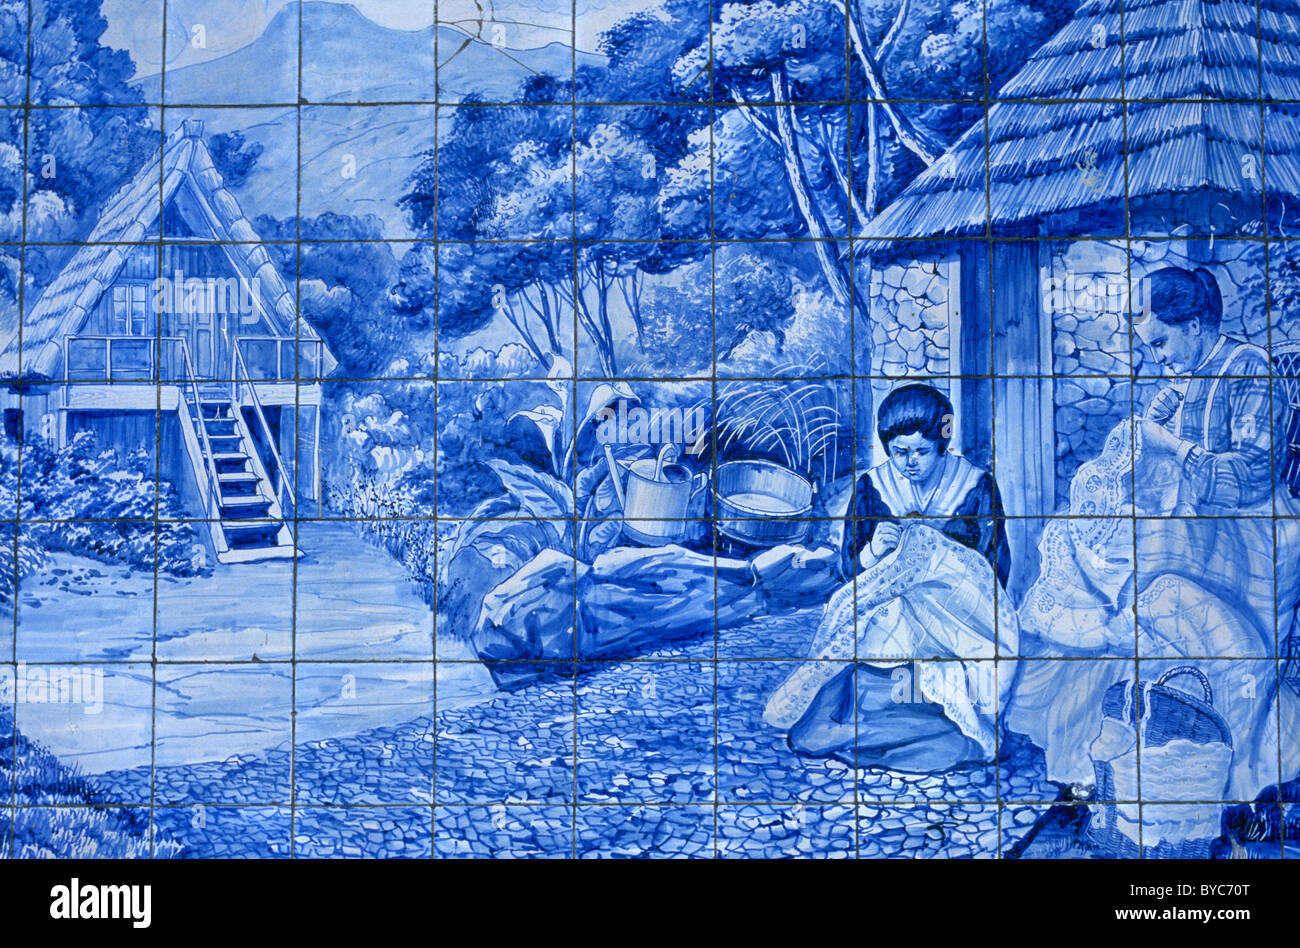 Detail of 20th century tiles azulejos depicting various madeiran detail of 20th century tiles azulejos depicting various madeiran scenes displayed on the exterior of funchals toyota showroom shiifo